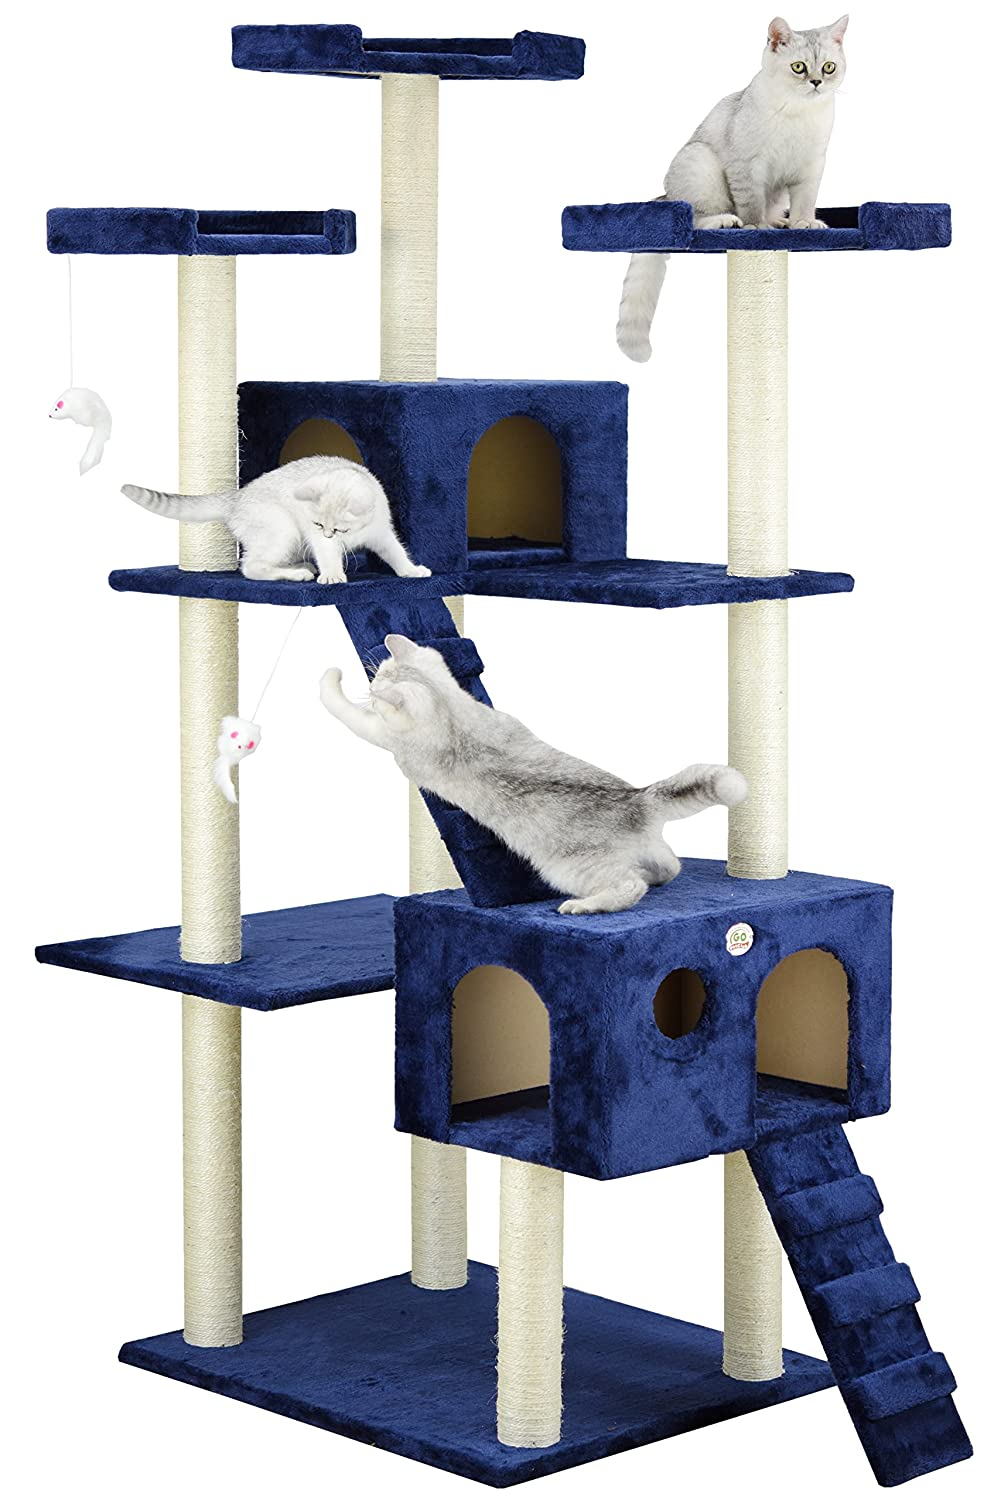 Make sure he or she stays entertained and comfortable with one of these cat trees there are enough towers for large and small cats sleeping area